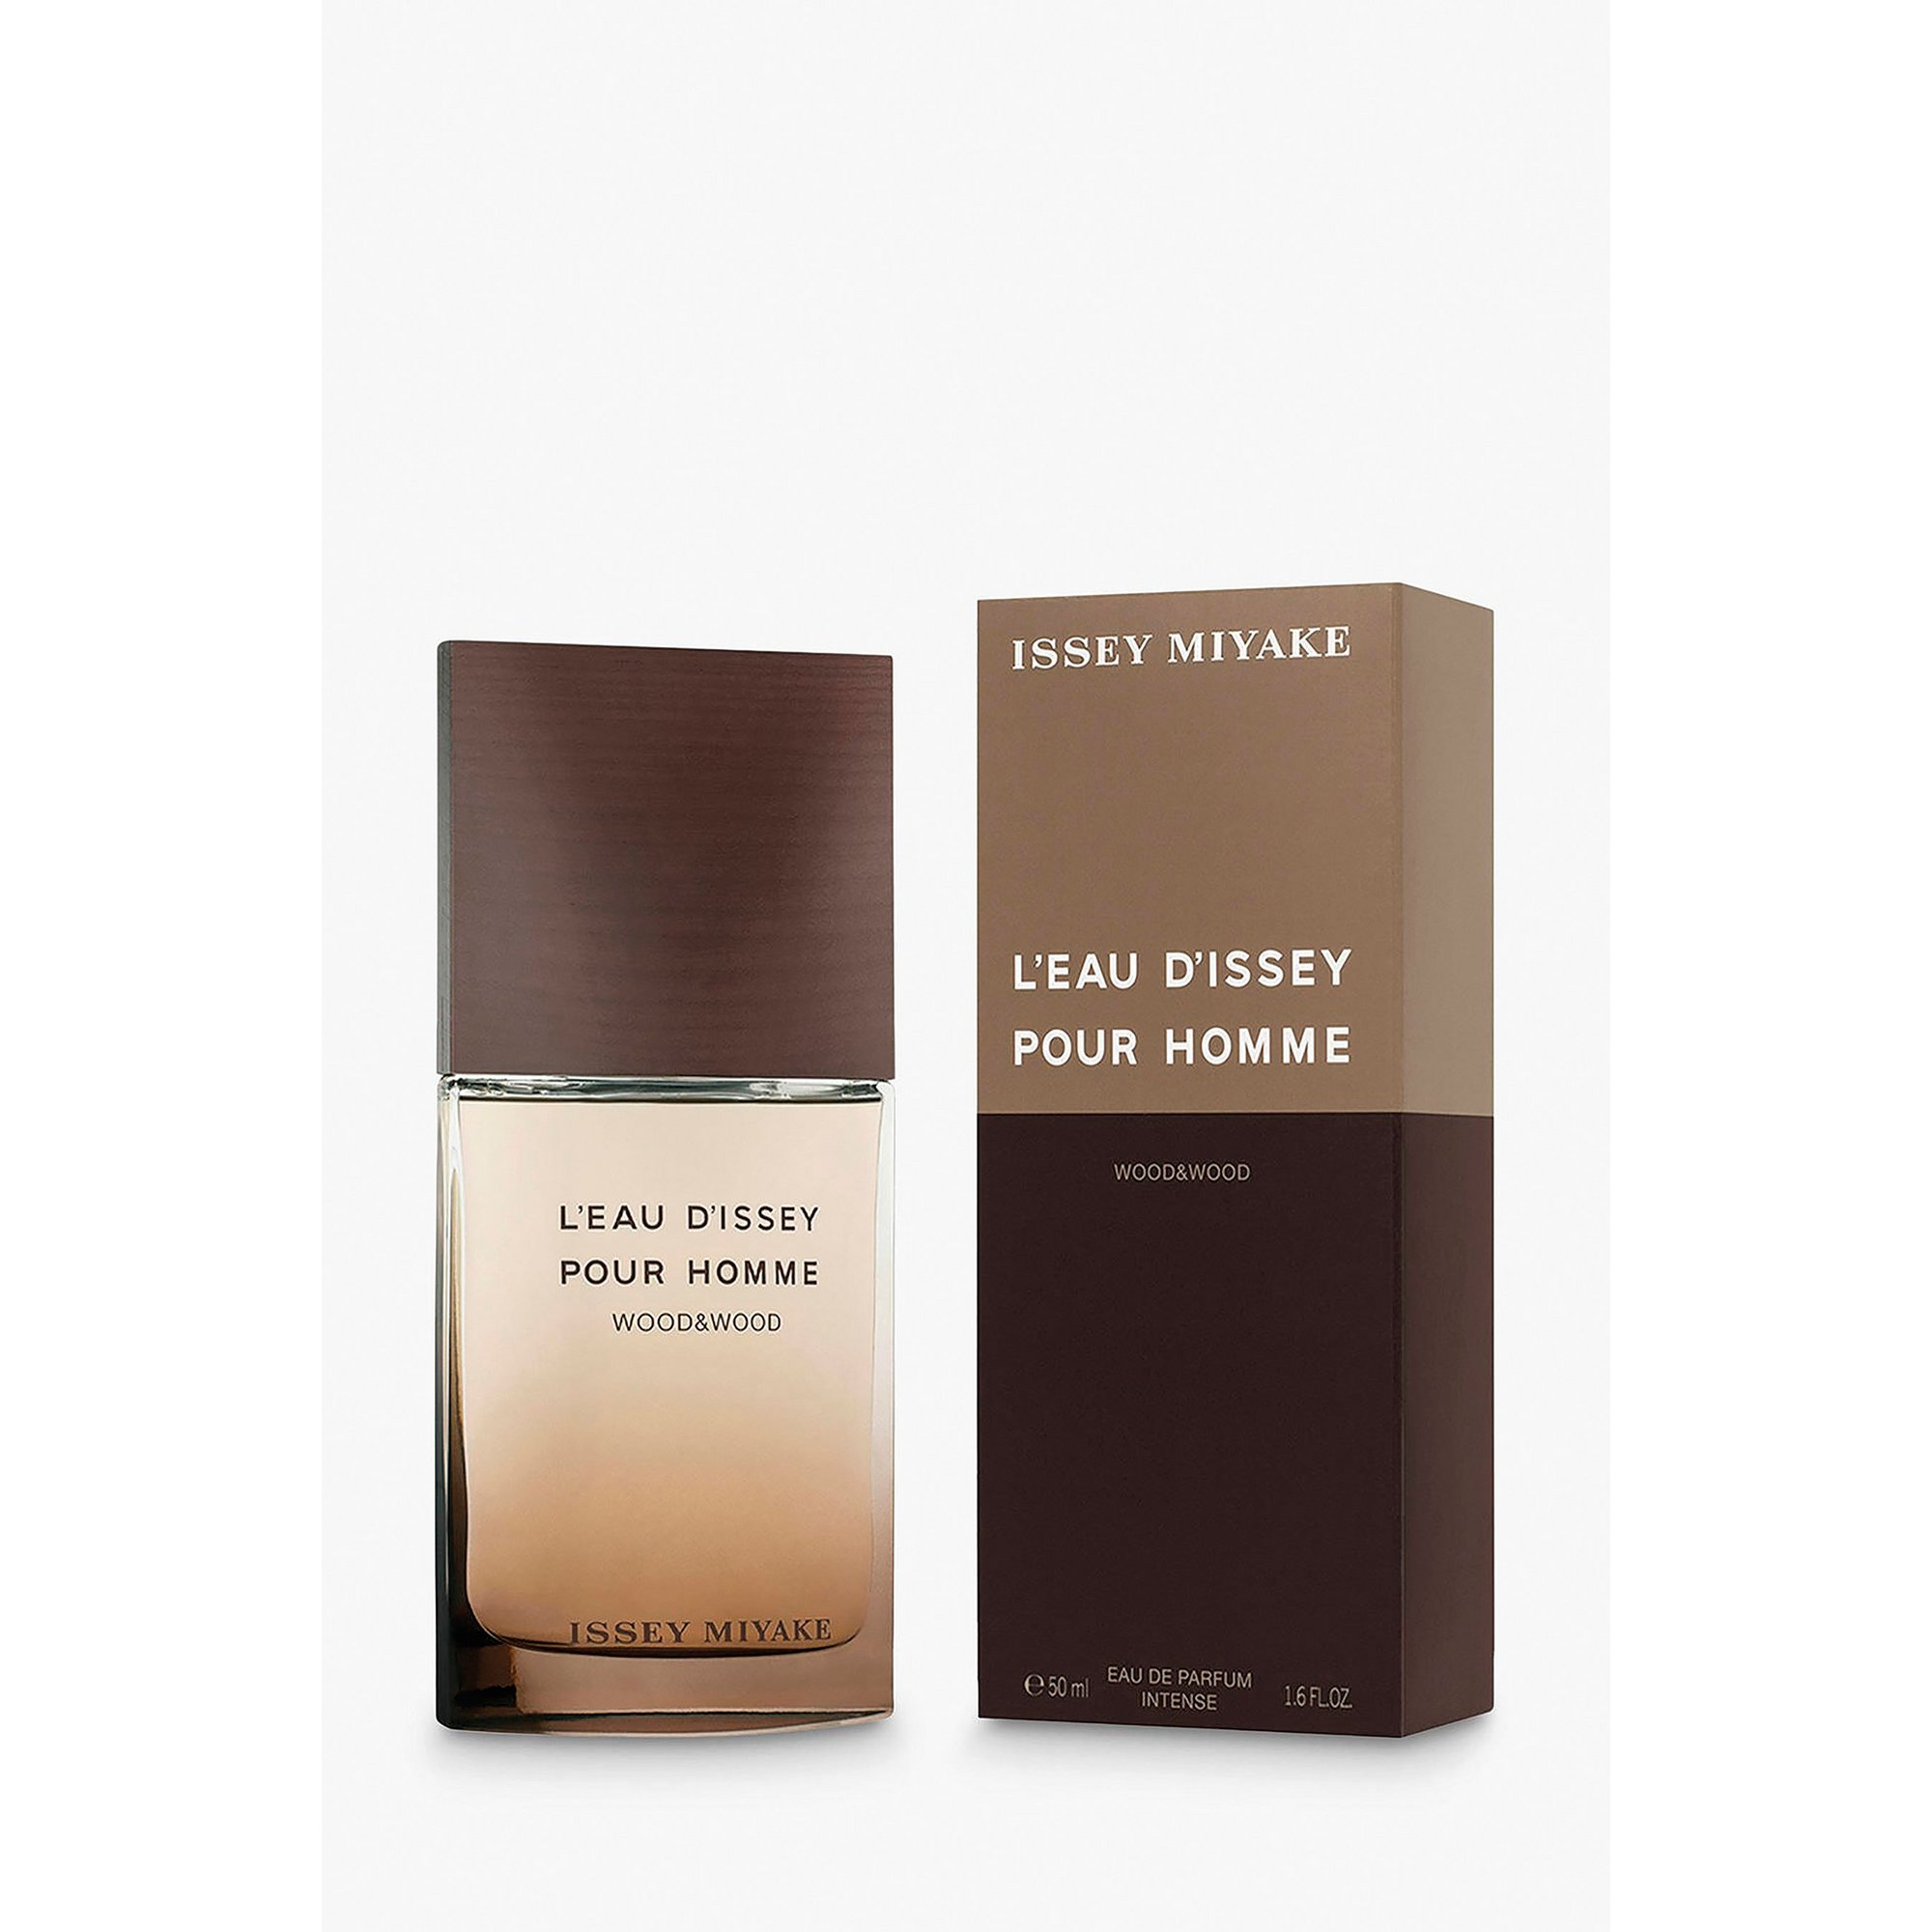 Image of Issey Miyake LEau dIssey Pour Homme Wood and Wood EDP